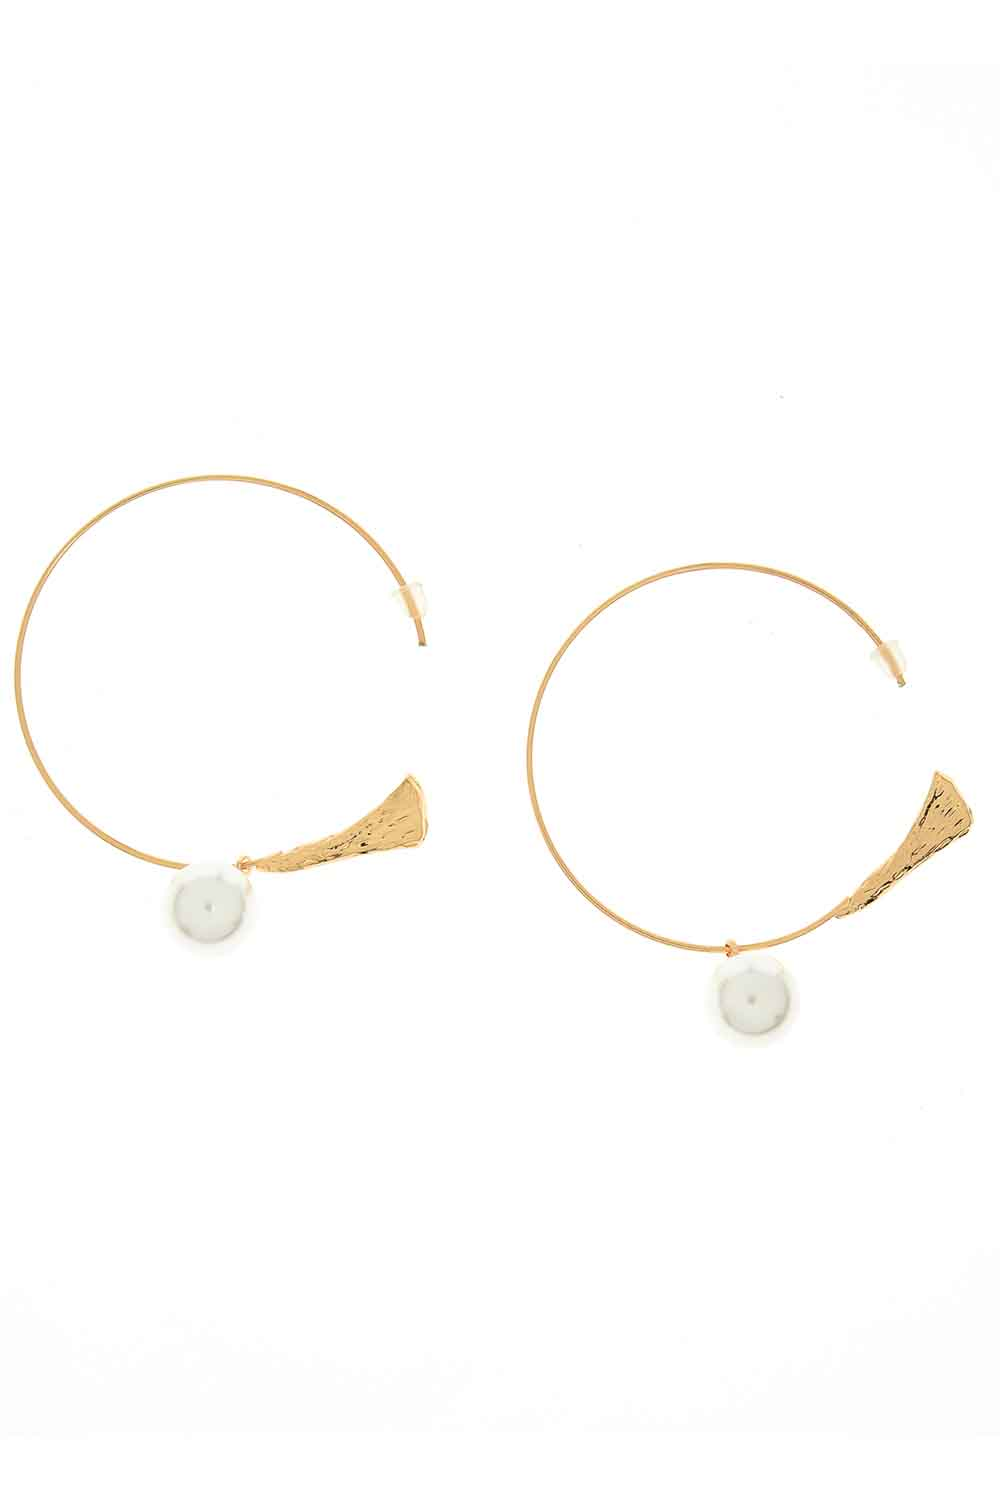 MIZALLE Pearl Detailed Circle Earring (St) (1)